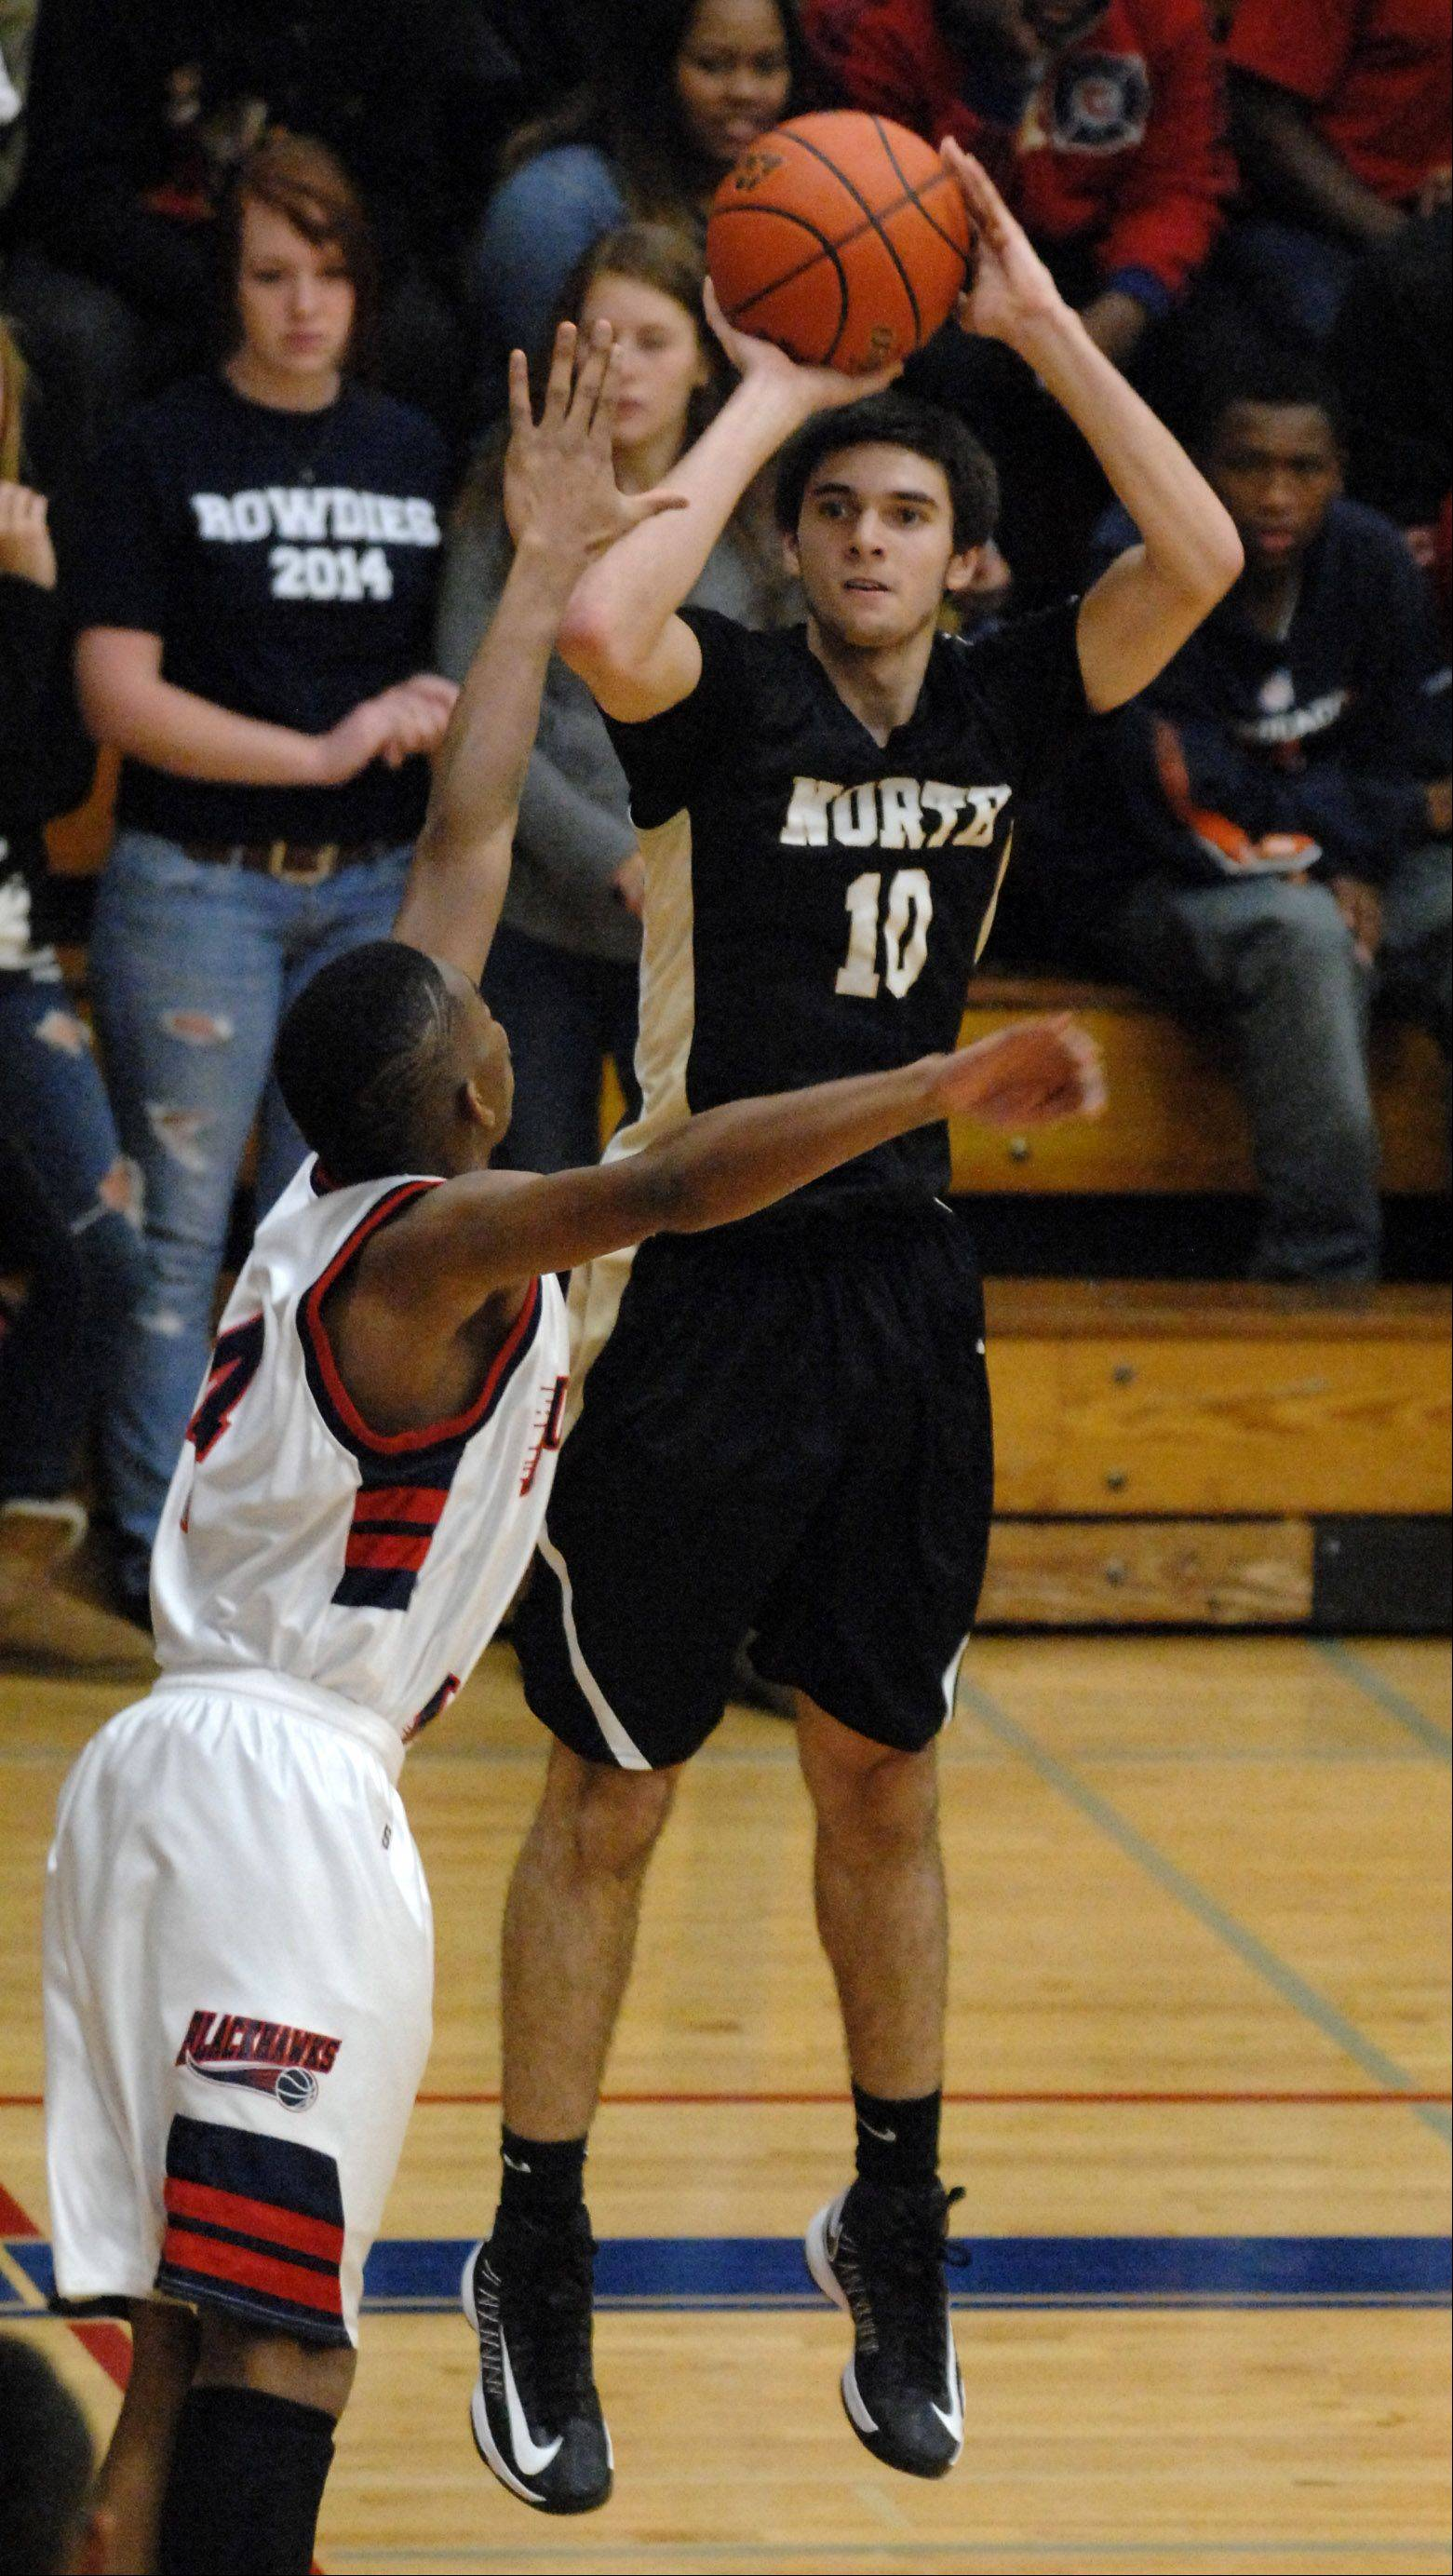 Images from the Glenbard North vs. West Aurora boys basketball game Friday, December 14, 2012.